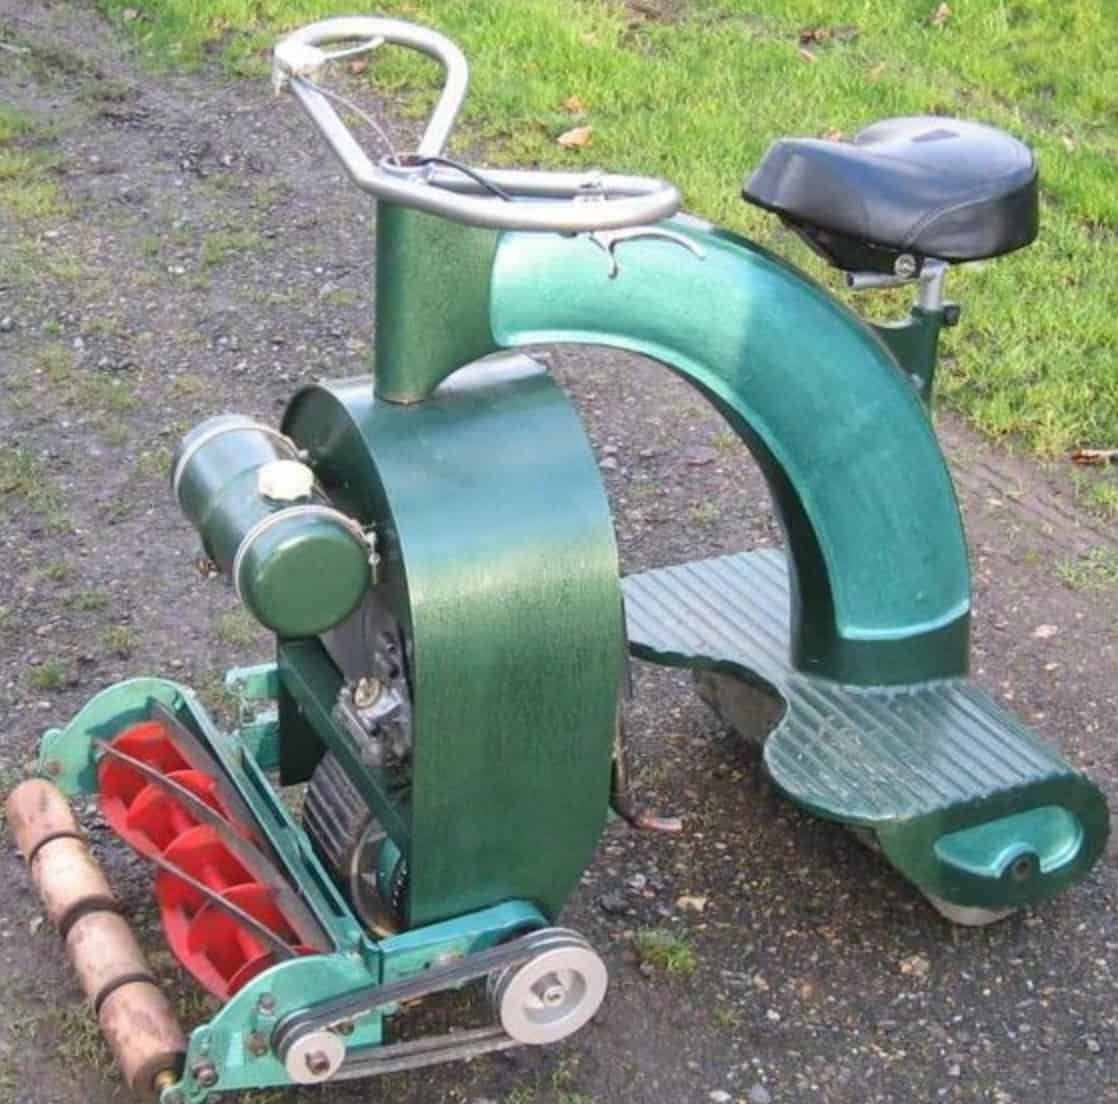 Strange And Funny Lawn Mowers In 2020 Lawn Mowers Lawn Mower Strange